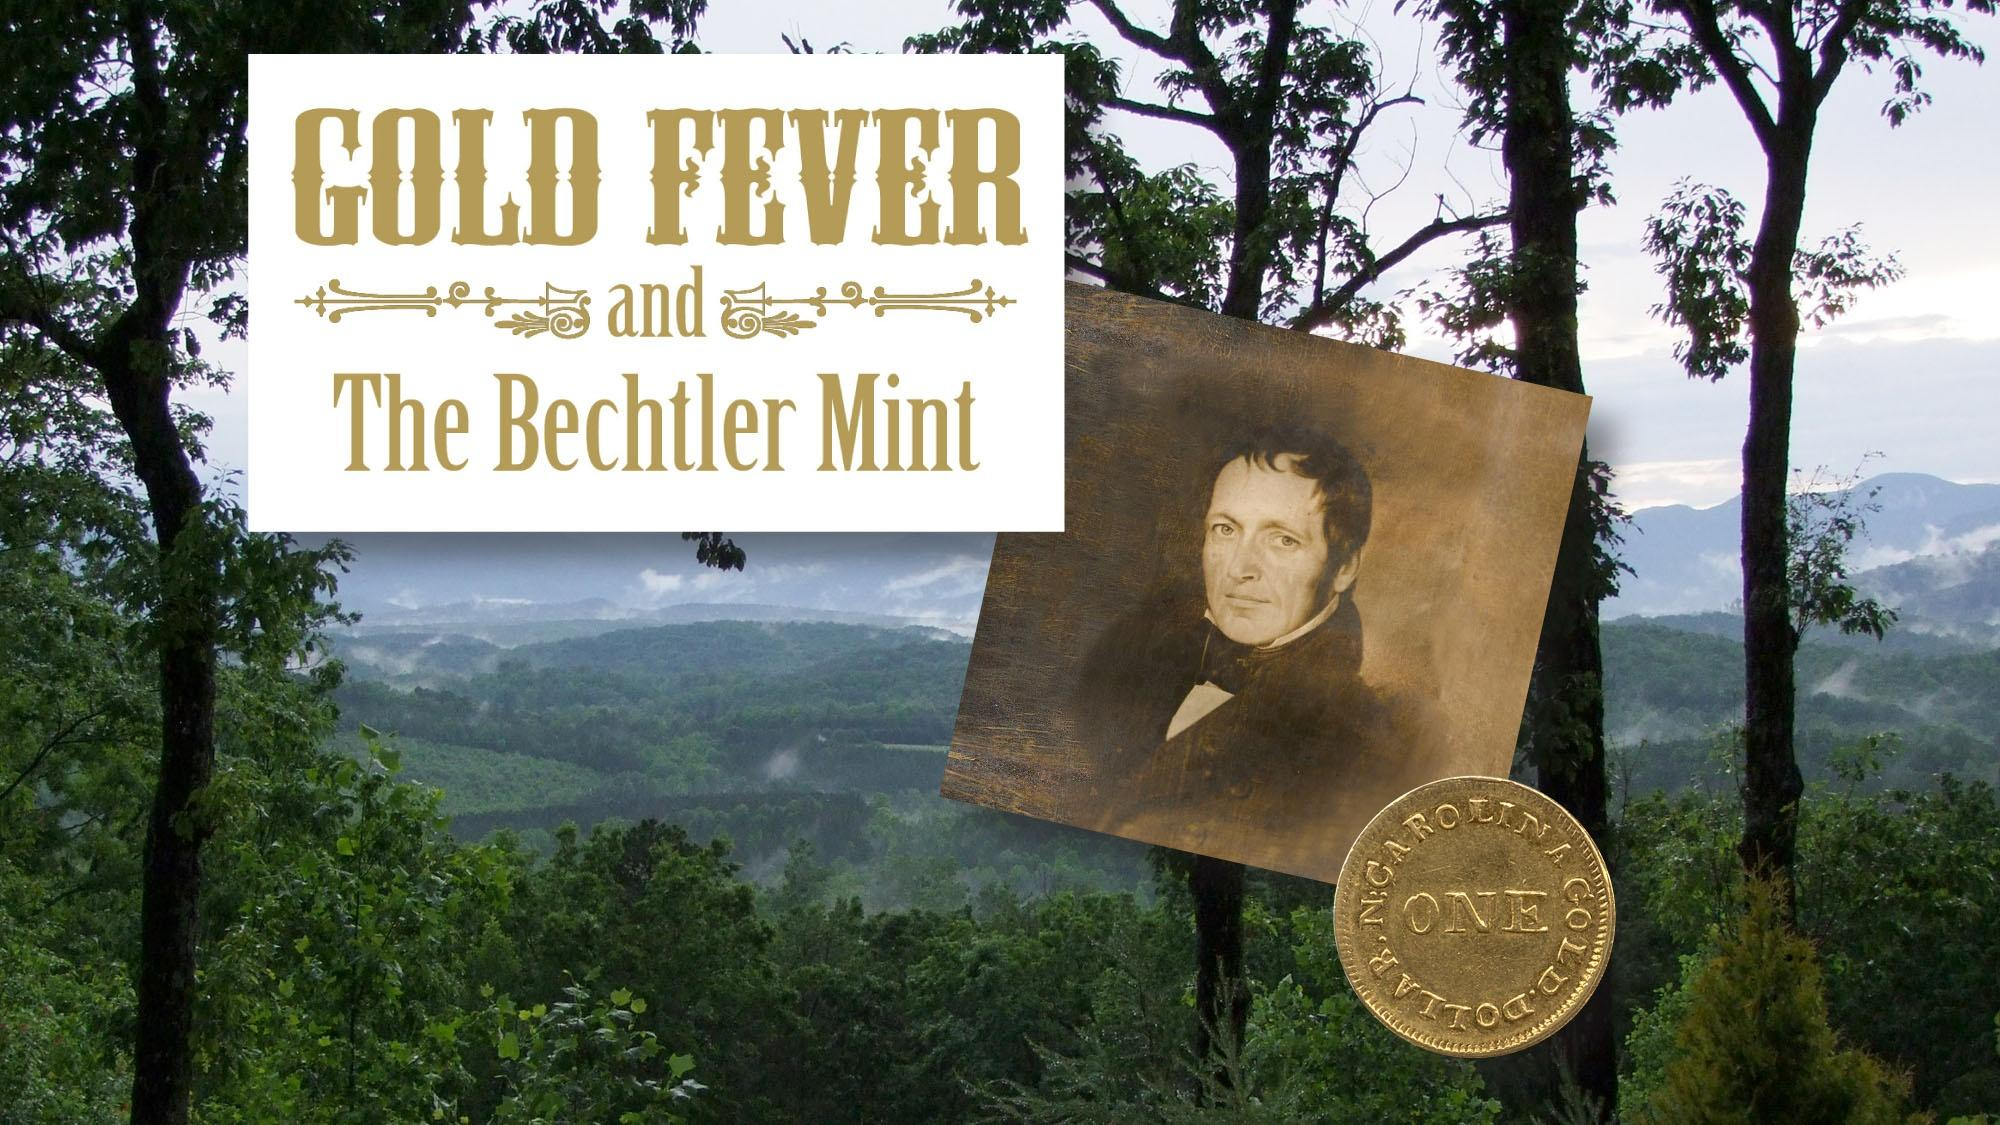 Gold Fever and the Bechtler Mint